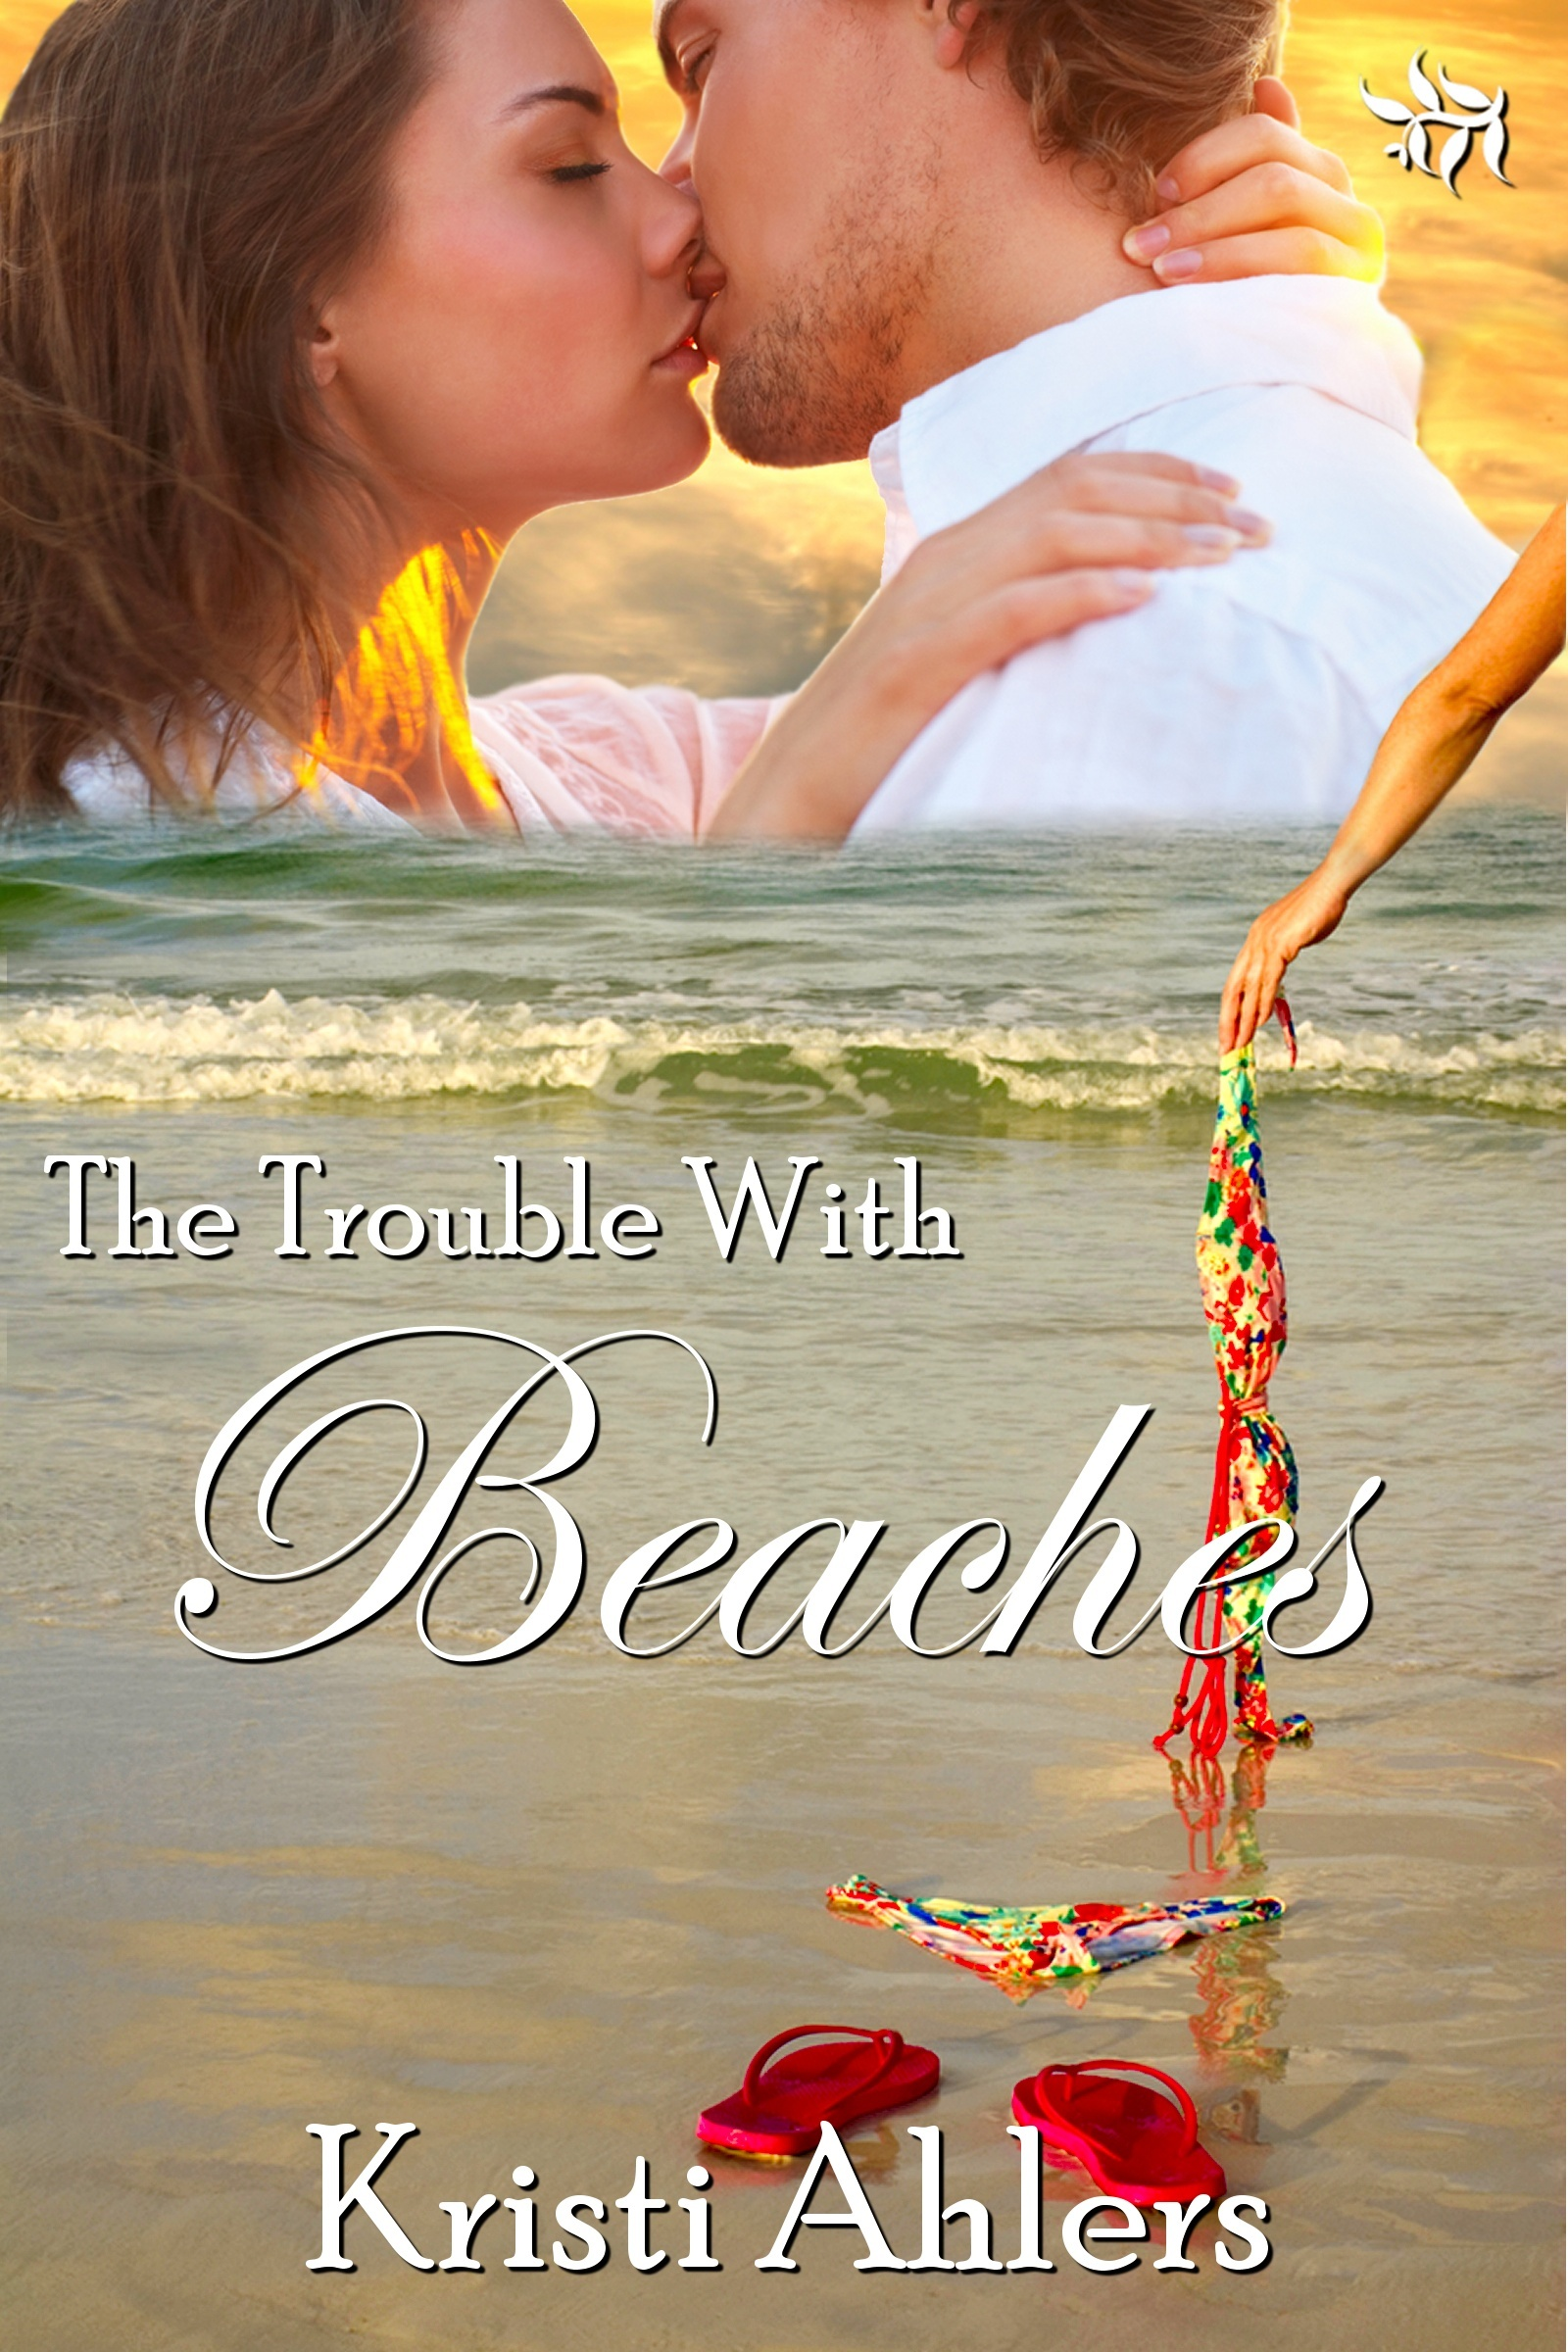 The Trouble with Beaches